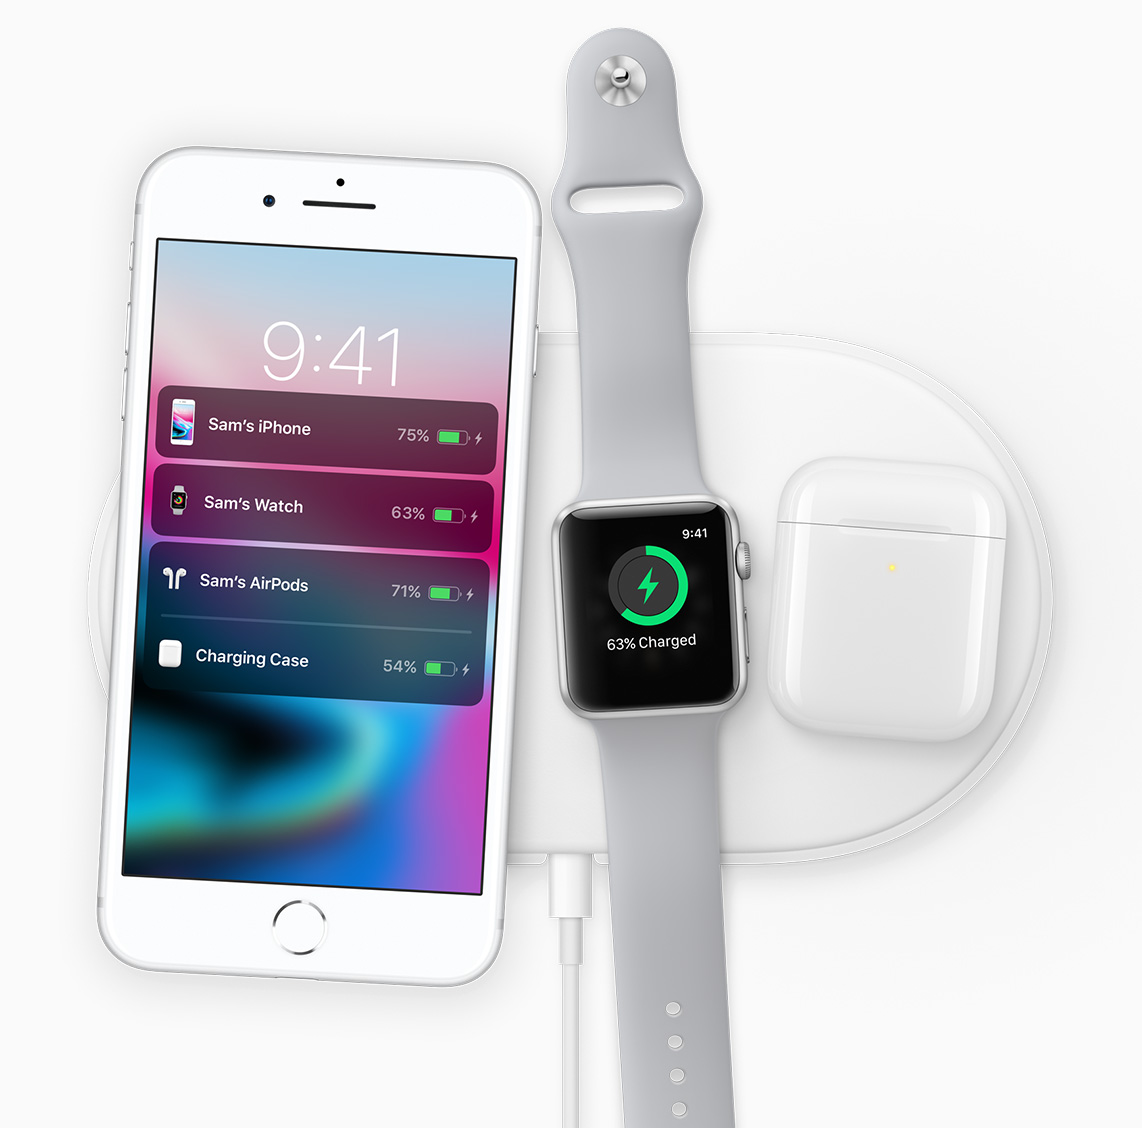 Apple products using the new wireless charging pad